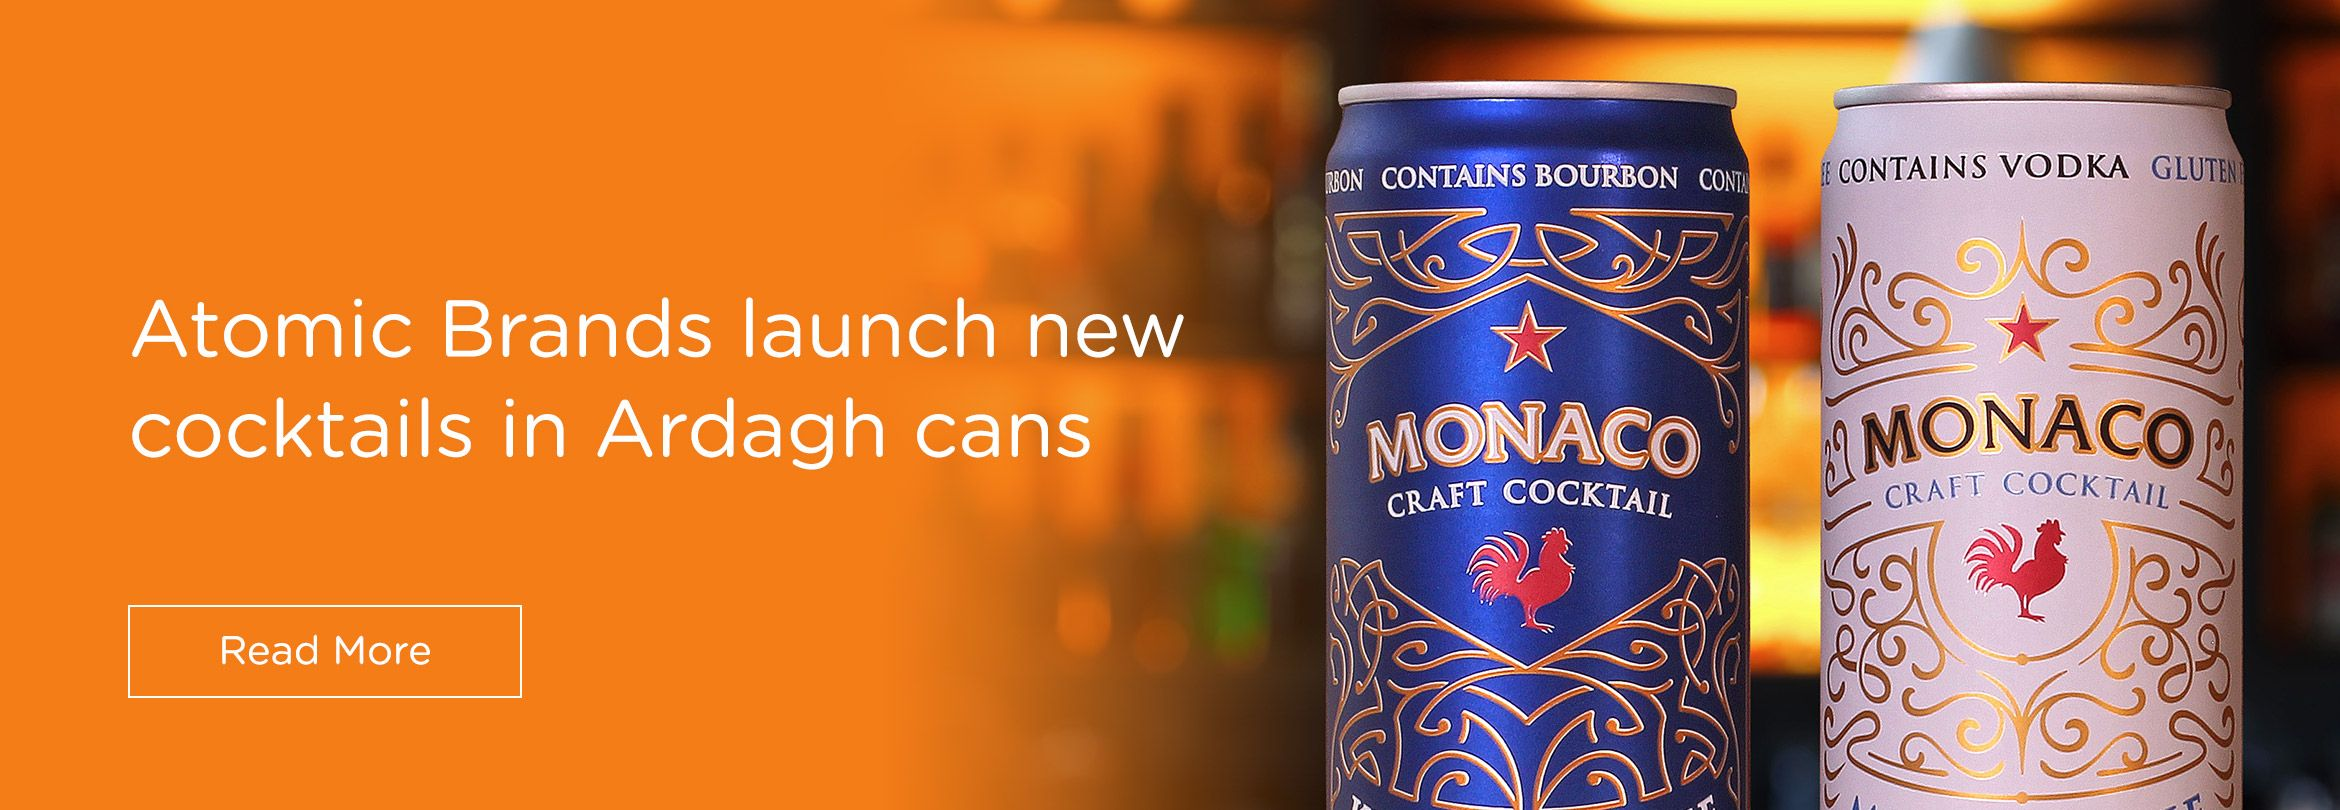 Atomic Brands launches new cocktails in Ardagh cans